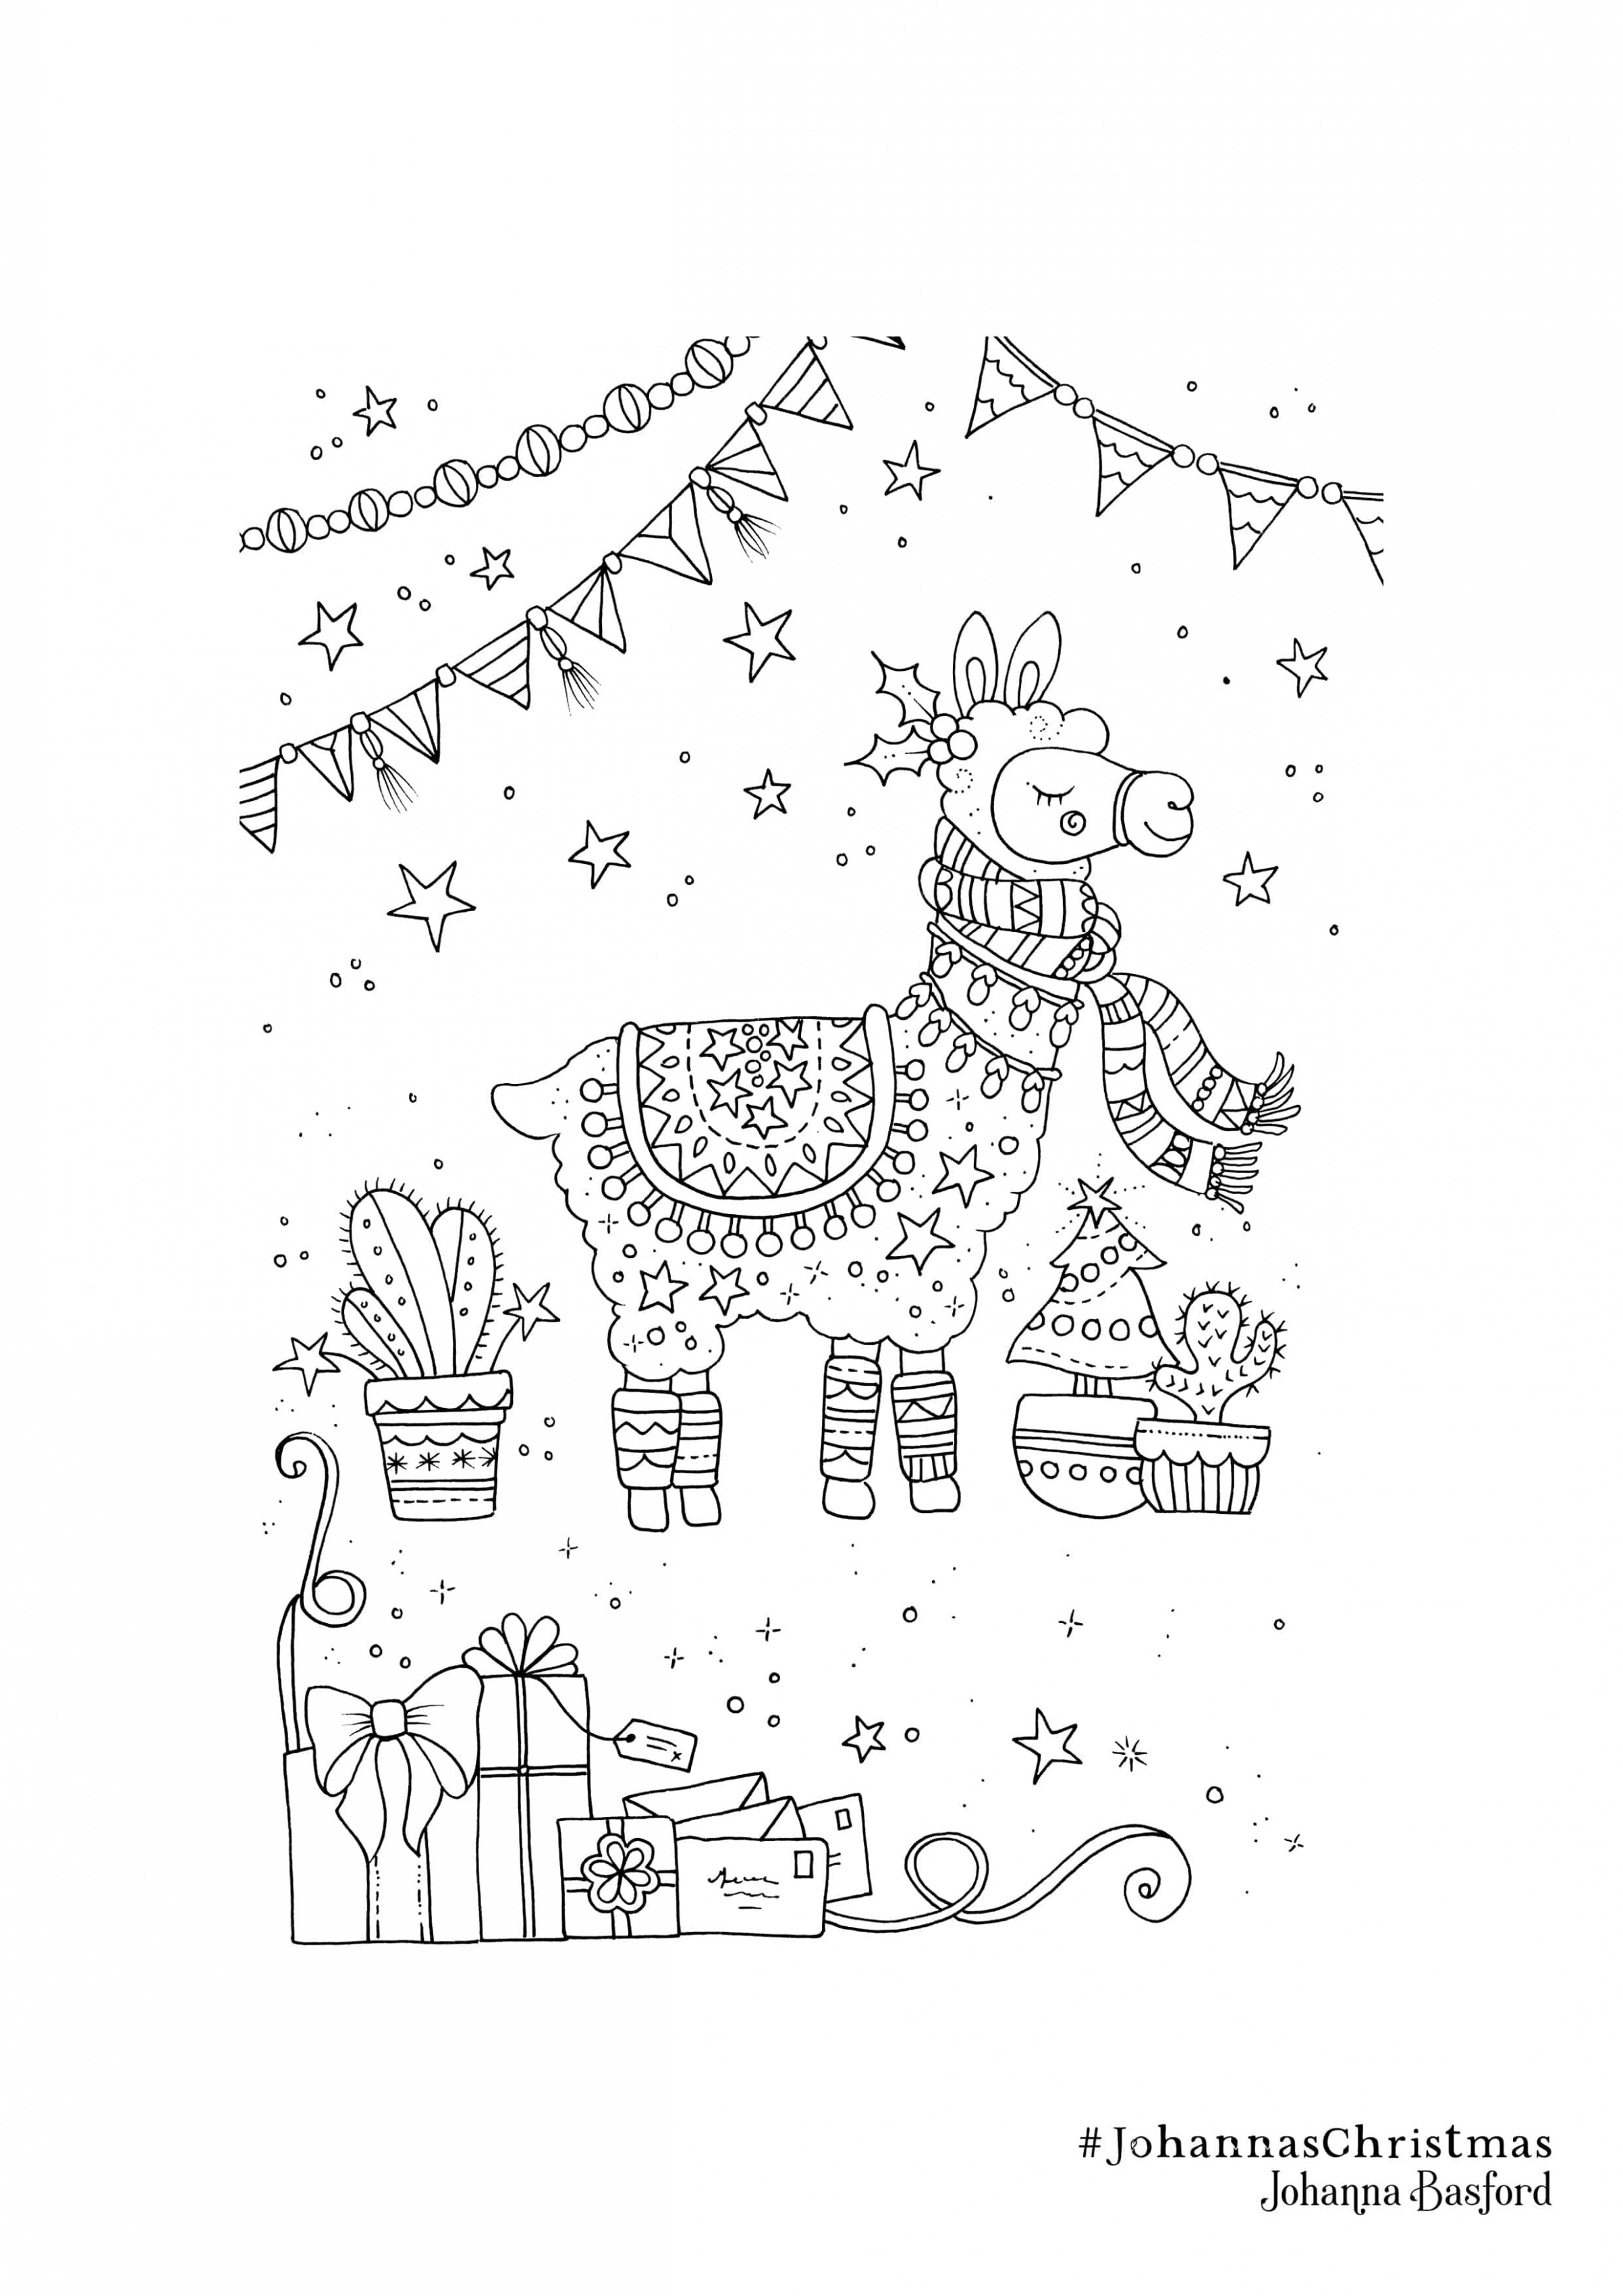 Christmas Colouring Downloads - Johanna Basford Johanna Basford